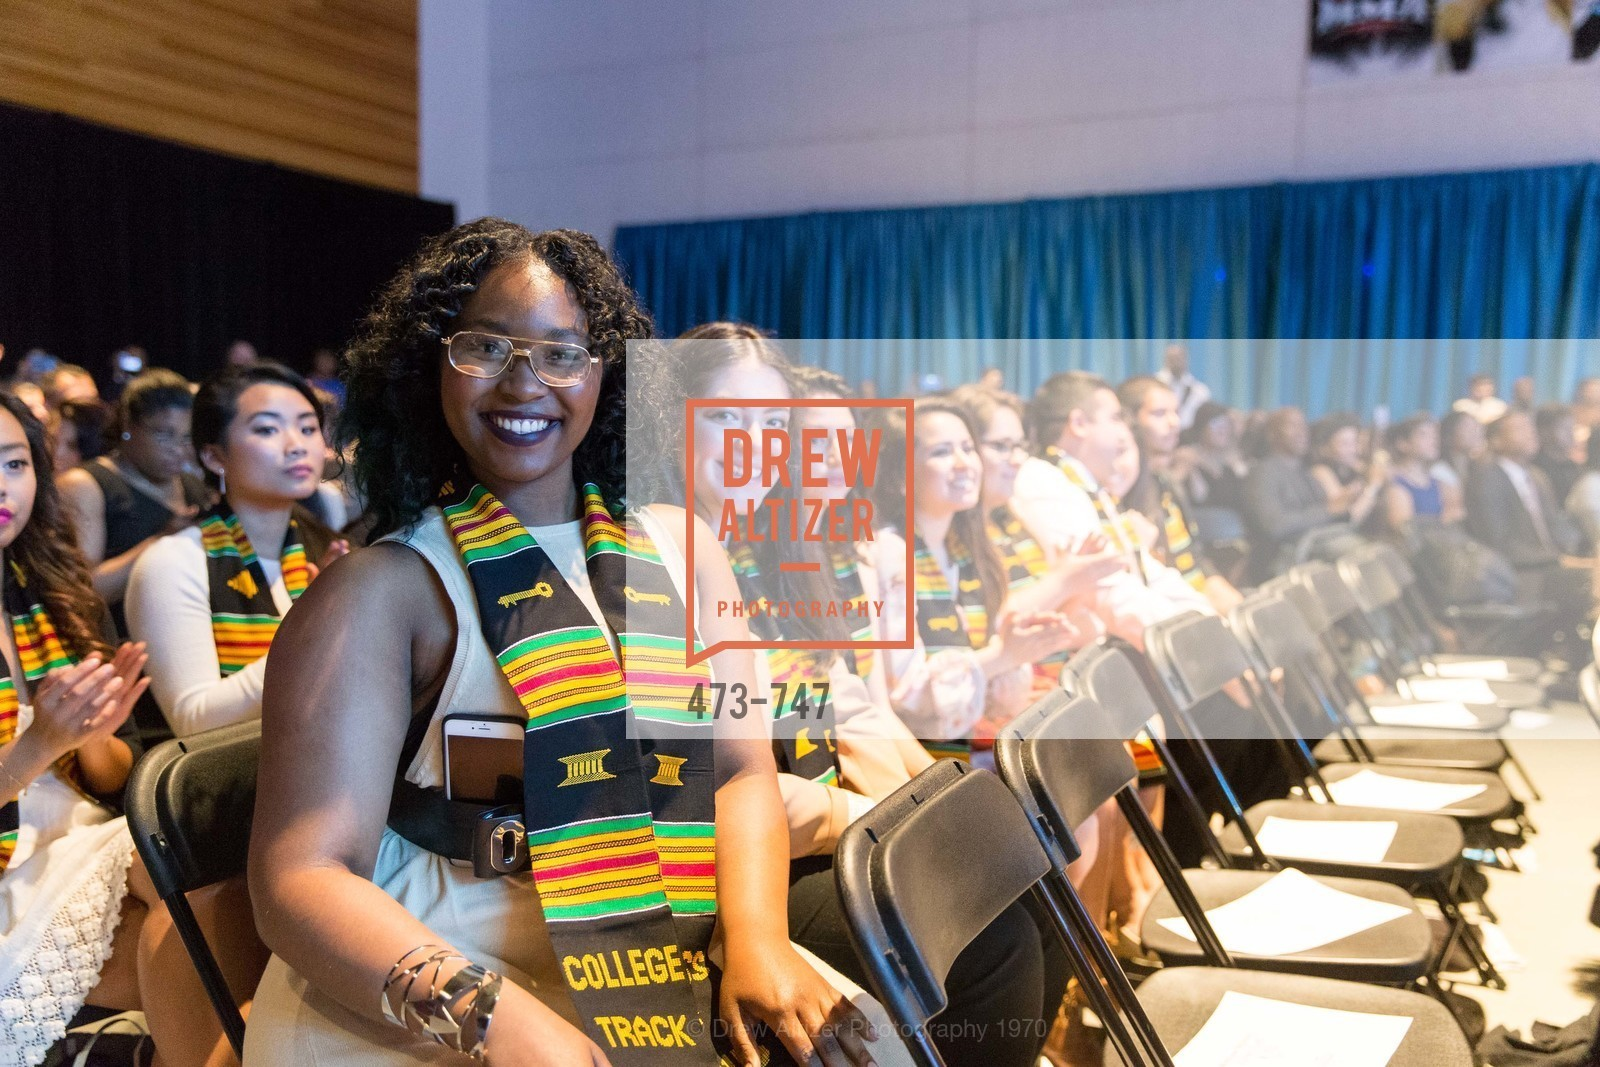 Extras, COLLEGE TRACK GRADUATION:  Launch to College and Careers, May 22nd, 2015, Photo,Drew Altizer, Drew Altizer Photography, full-service agency, private events, San Francisco photographer, photographer california